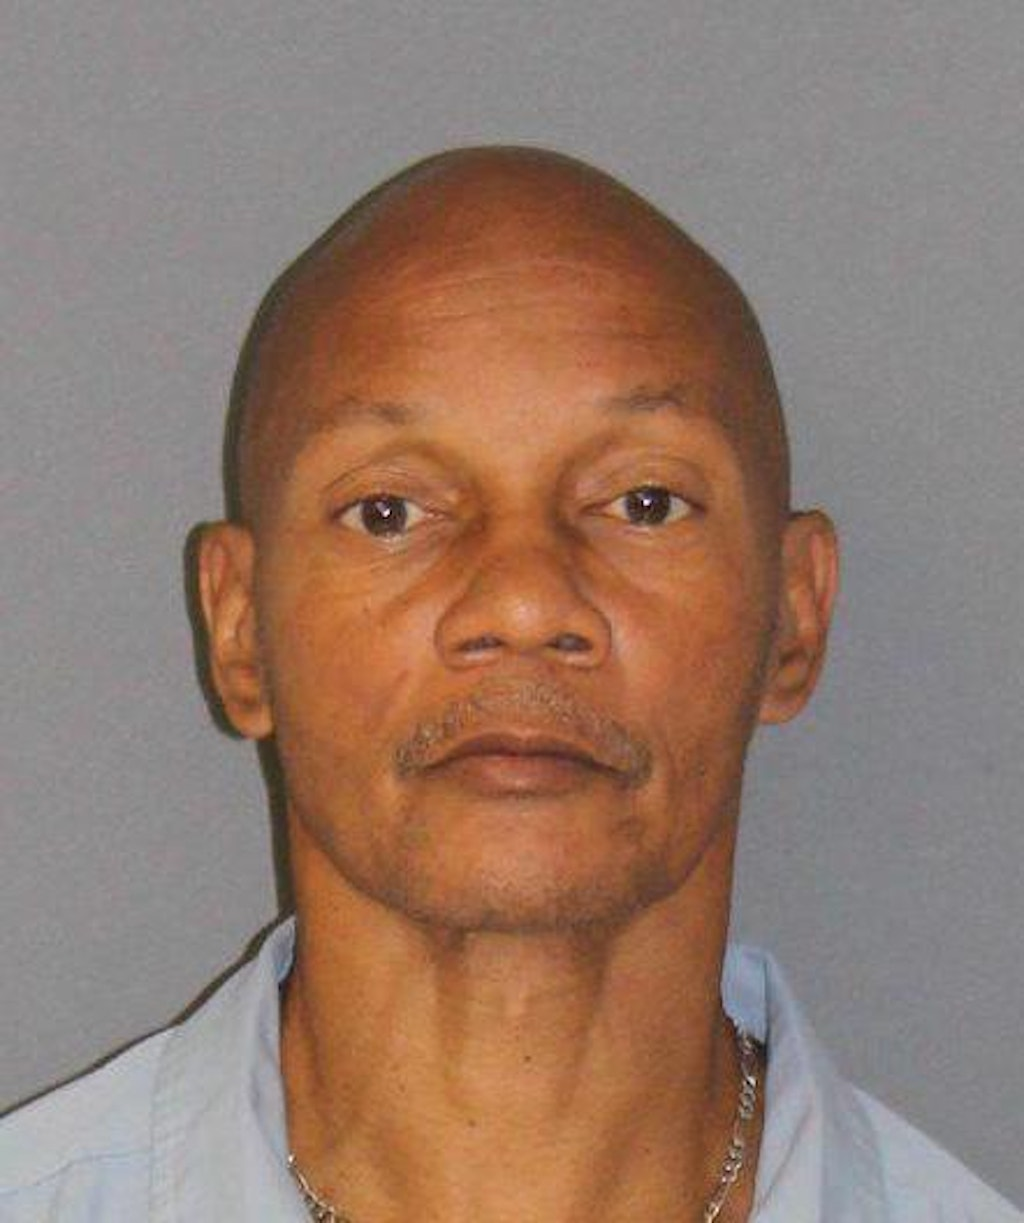 Release of Former Virginia Death-Row Prisoner Delayed as Police Protest Grant of Parole